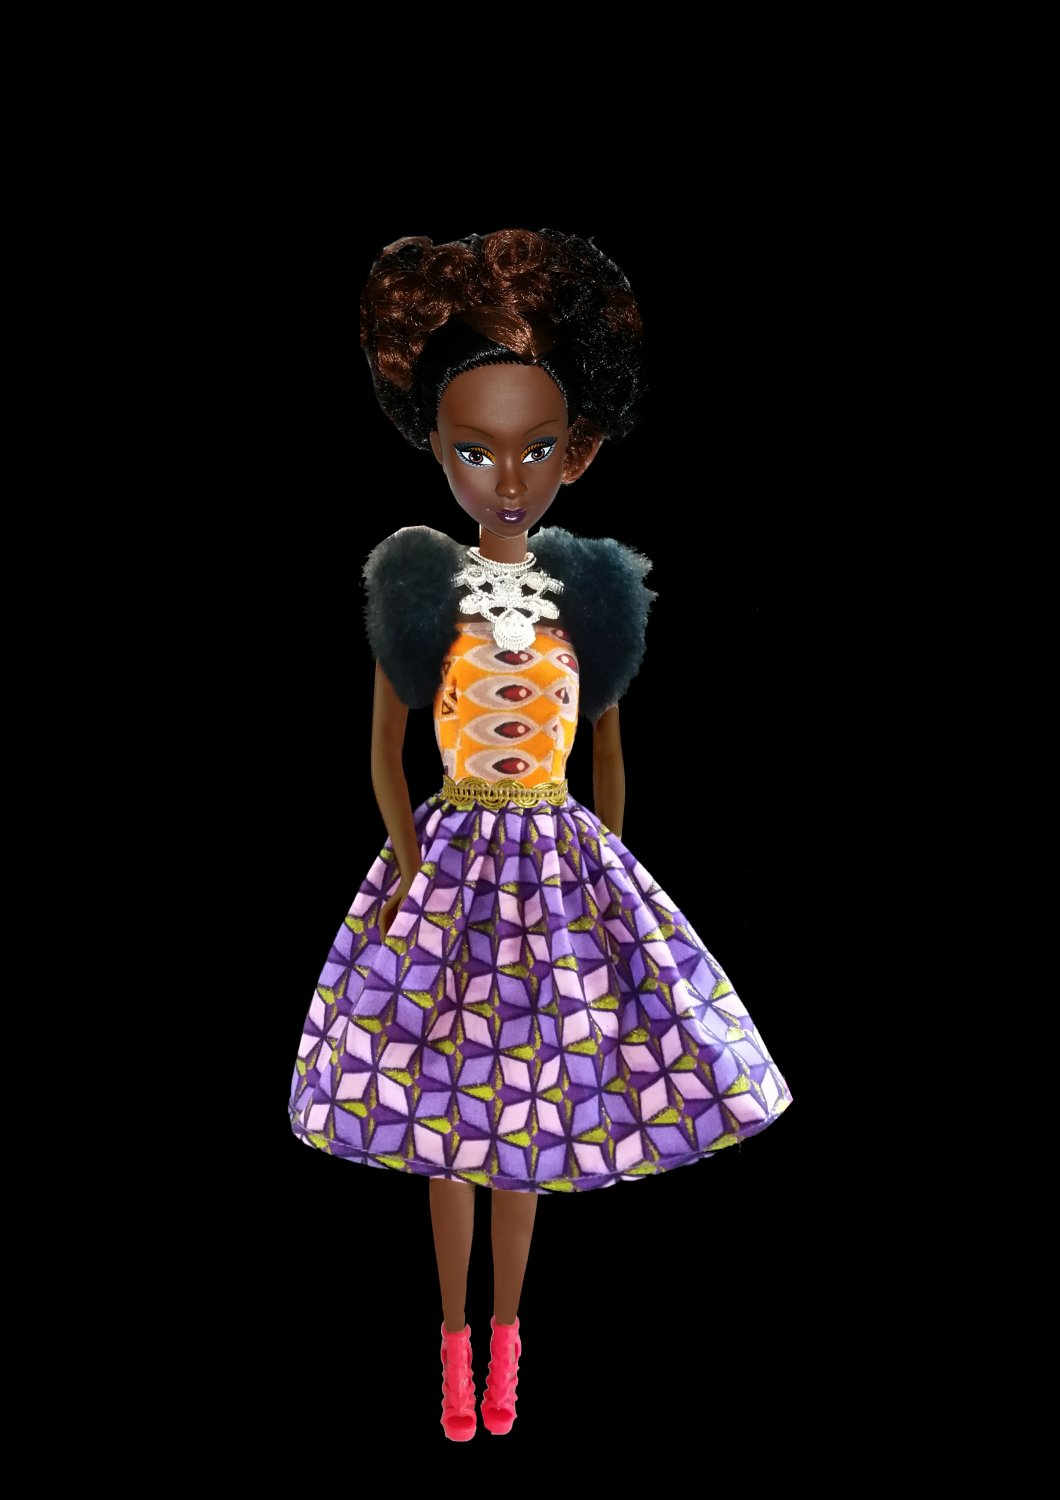 Queens of Africa Dolls - Azeezah